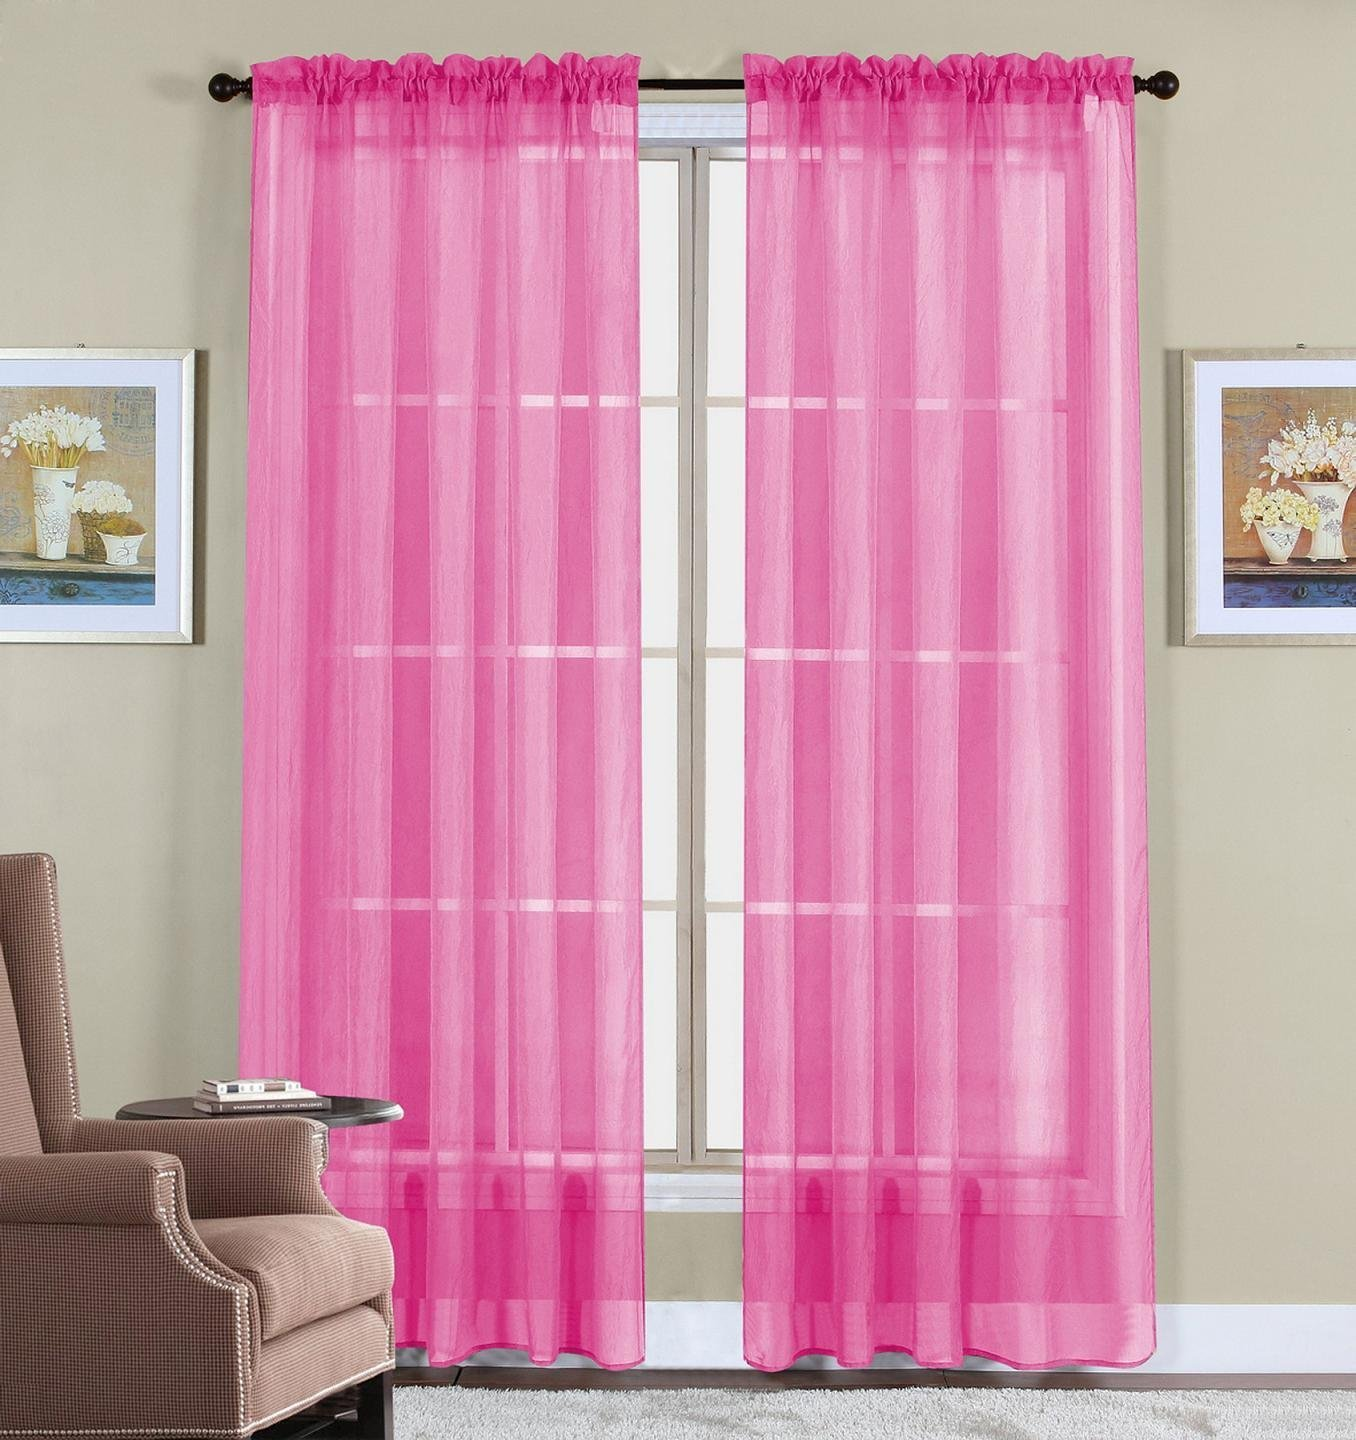 "60"" X 63"" 2 Pink Elegant Window Panels Treatments Sheers"